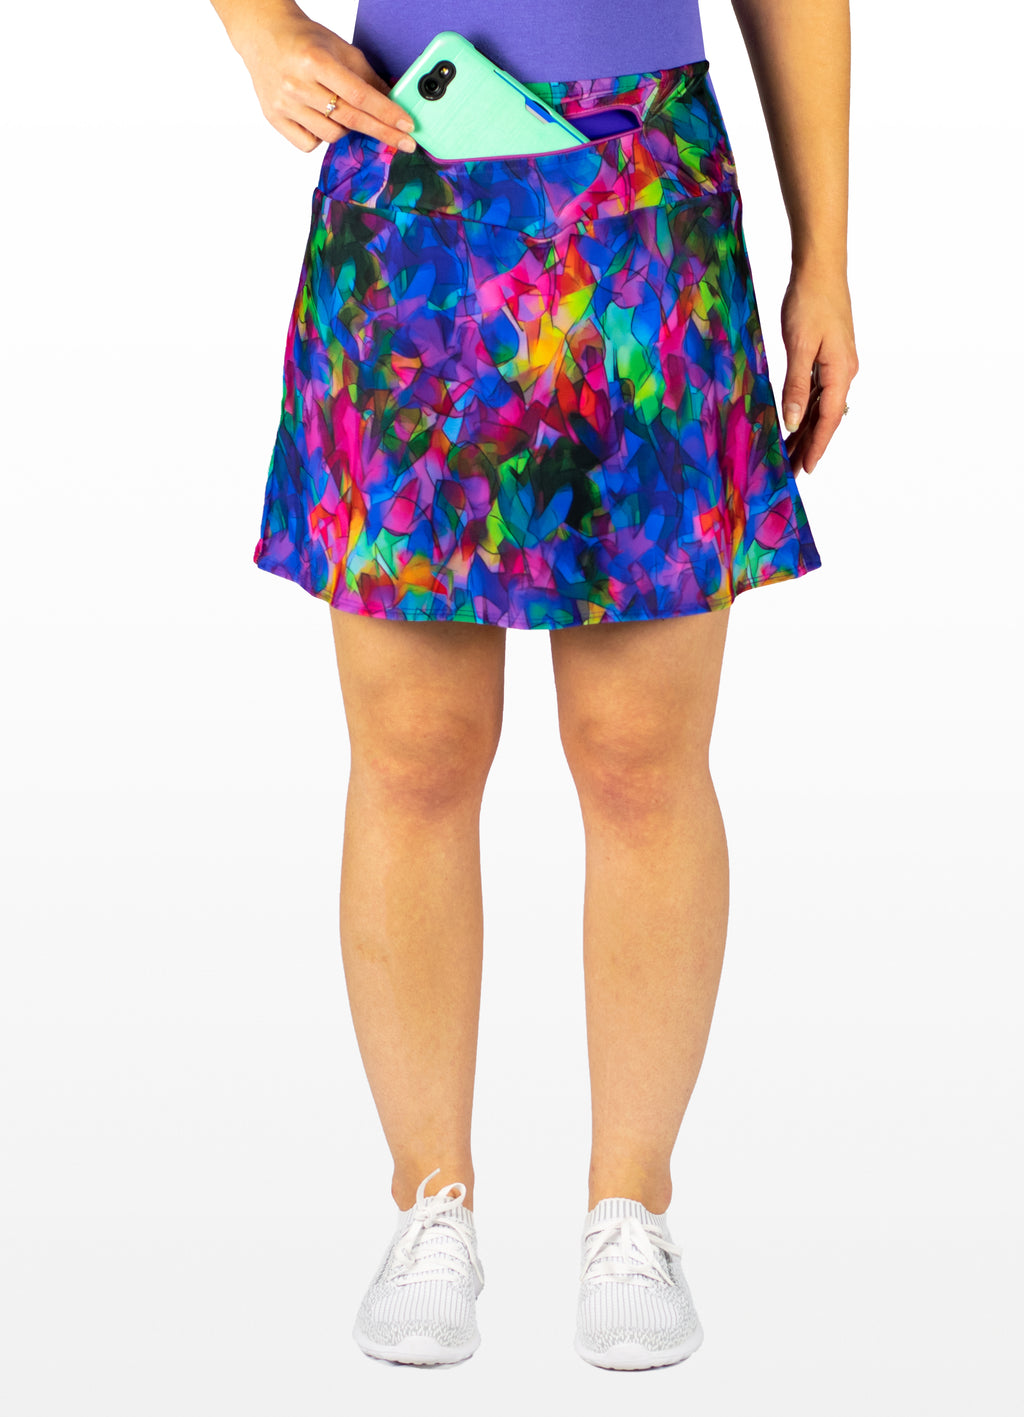 384d90792 SparkleSkirts® | Woman's Athletic Apparel